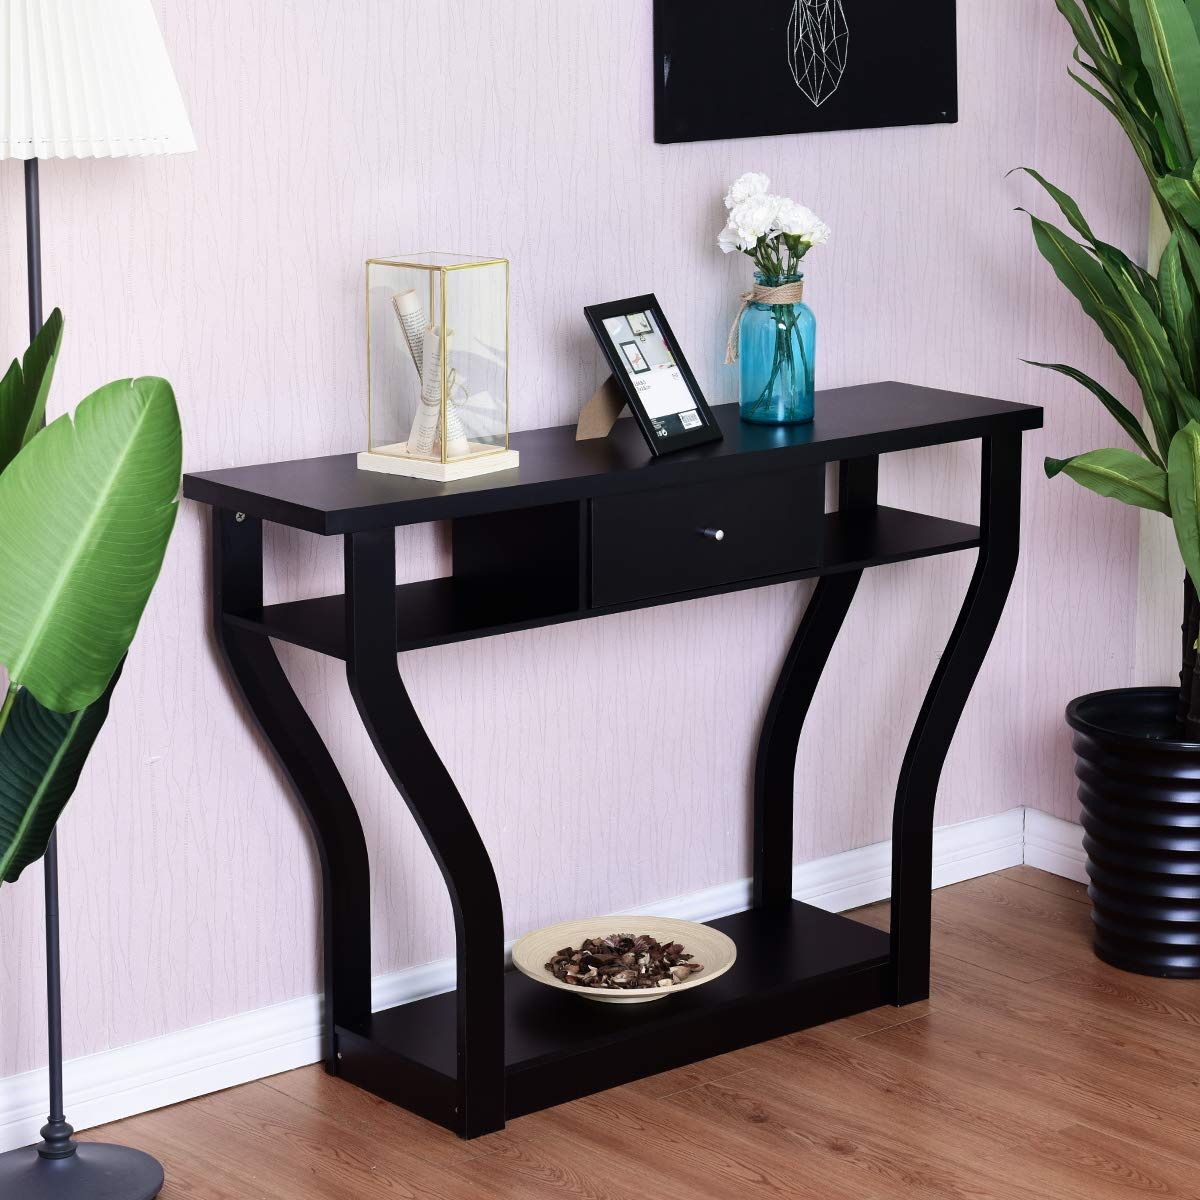 Small Space Sofa Side Table with Storage Drawer and Shelf Home Office Living Room Furniture Narrow Accent Hall Table (Black)